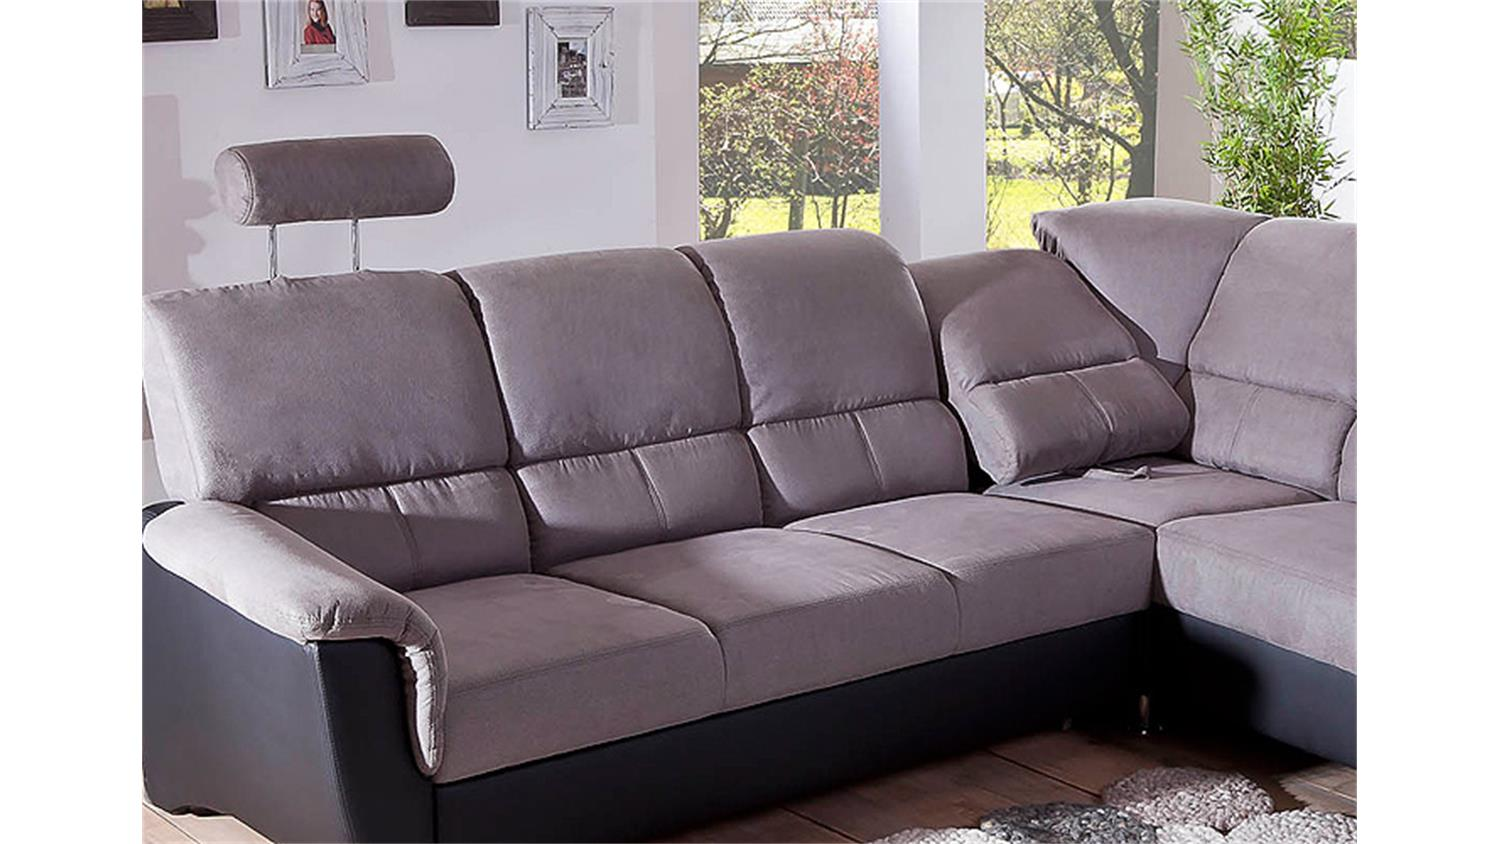 Garnitur Torgau Couch Grau Schwarz Finest Medium Size Of Eckcouch Mit